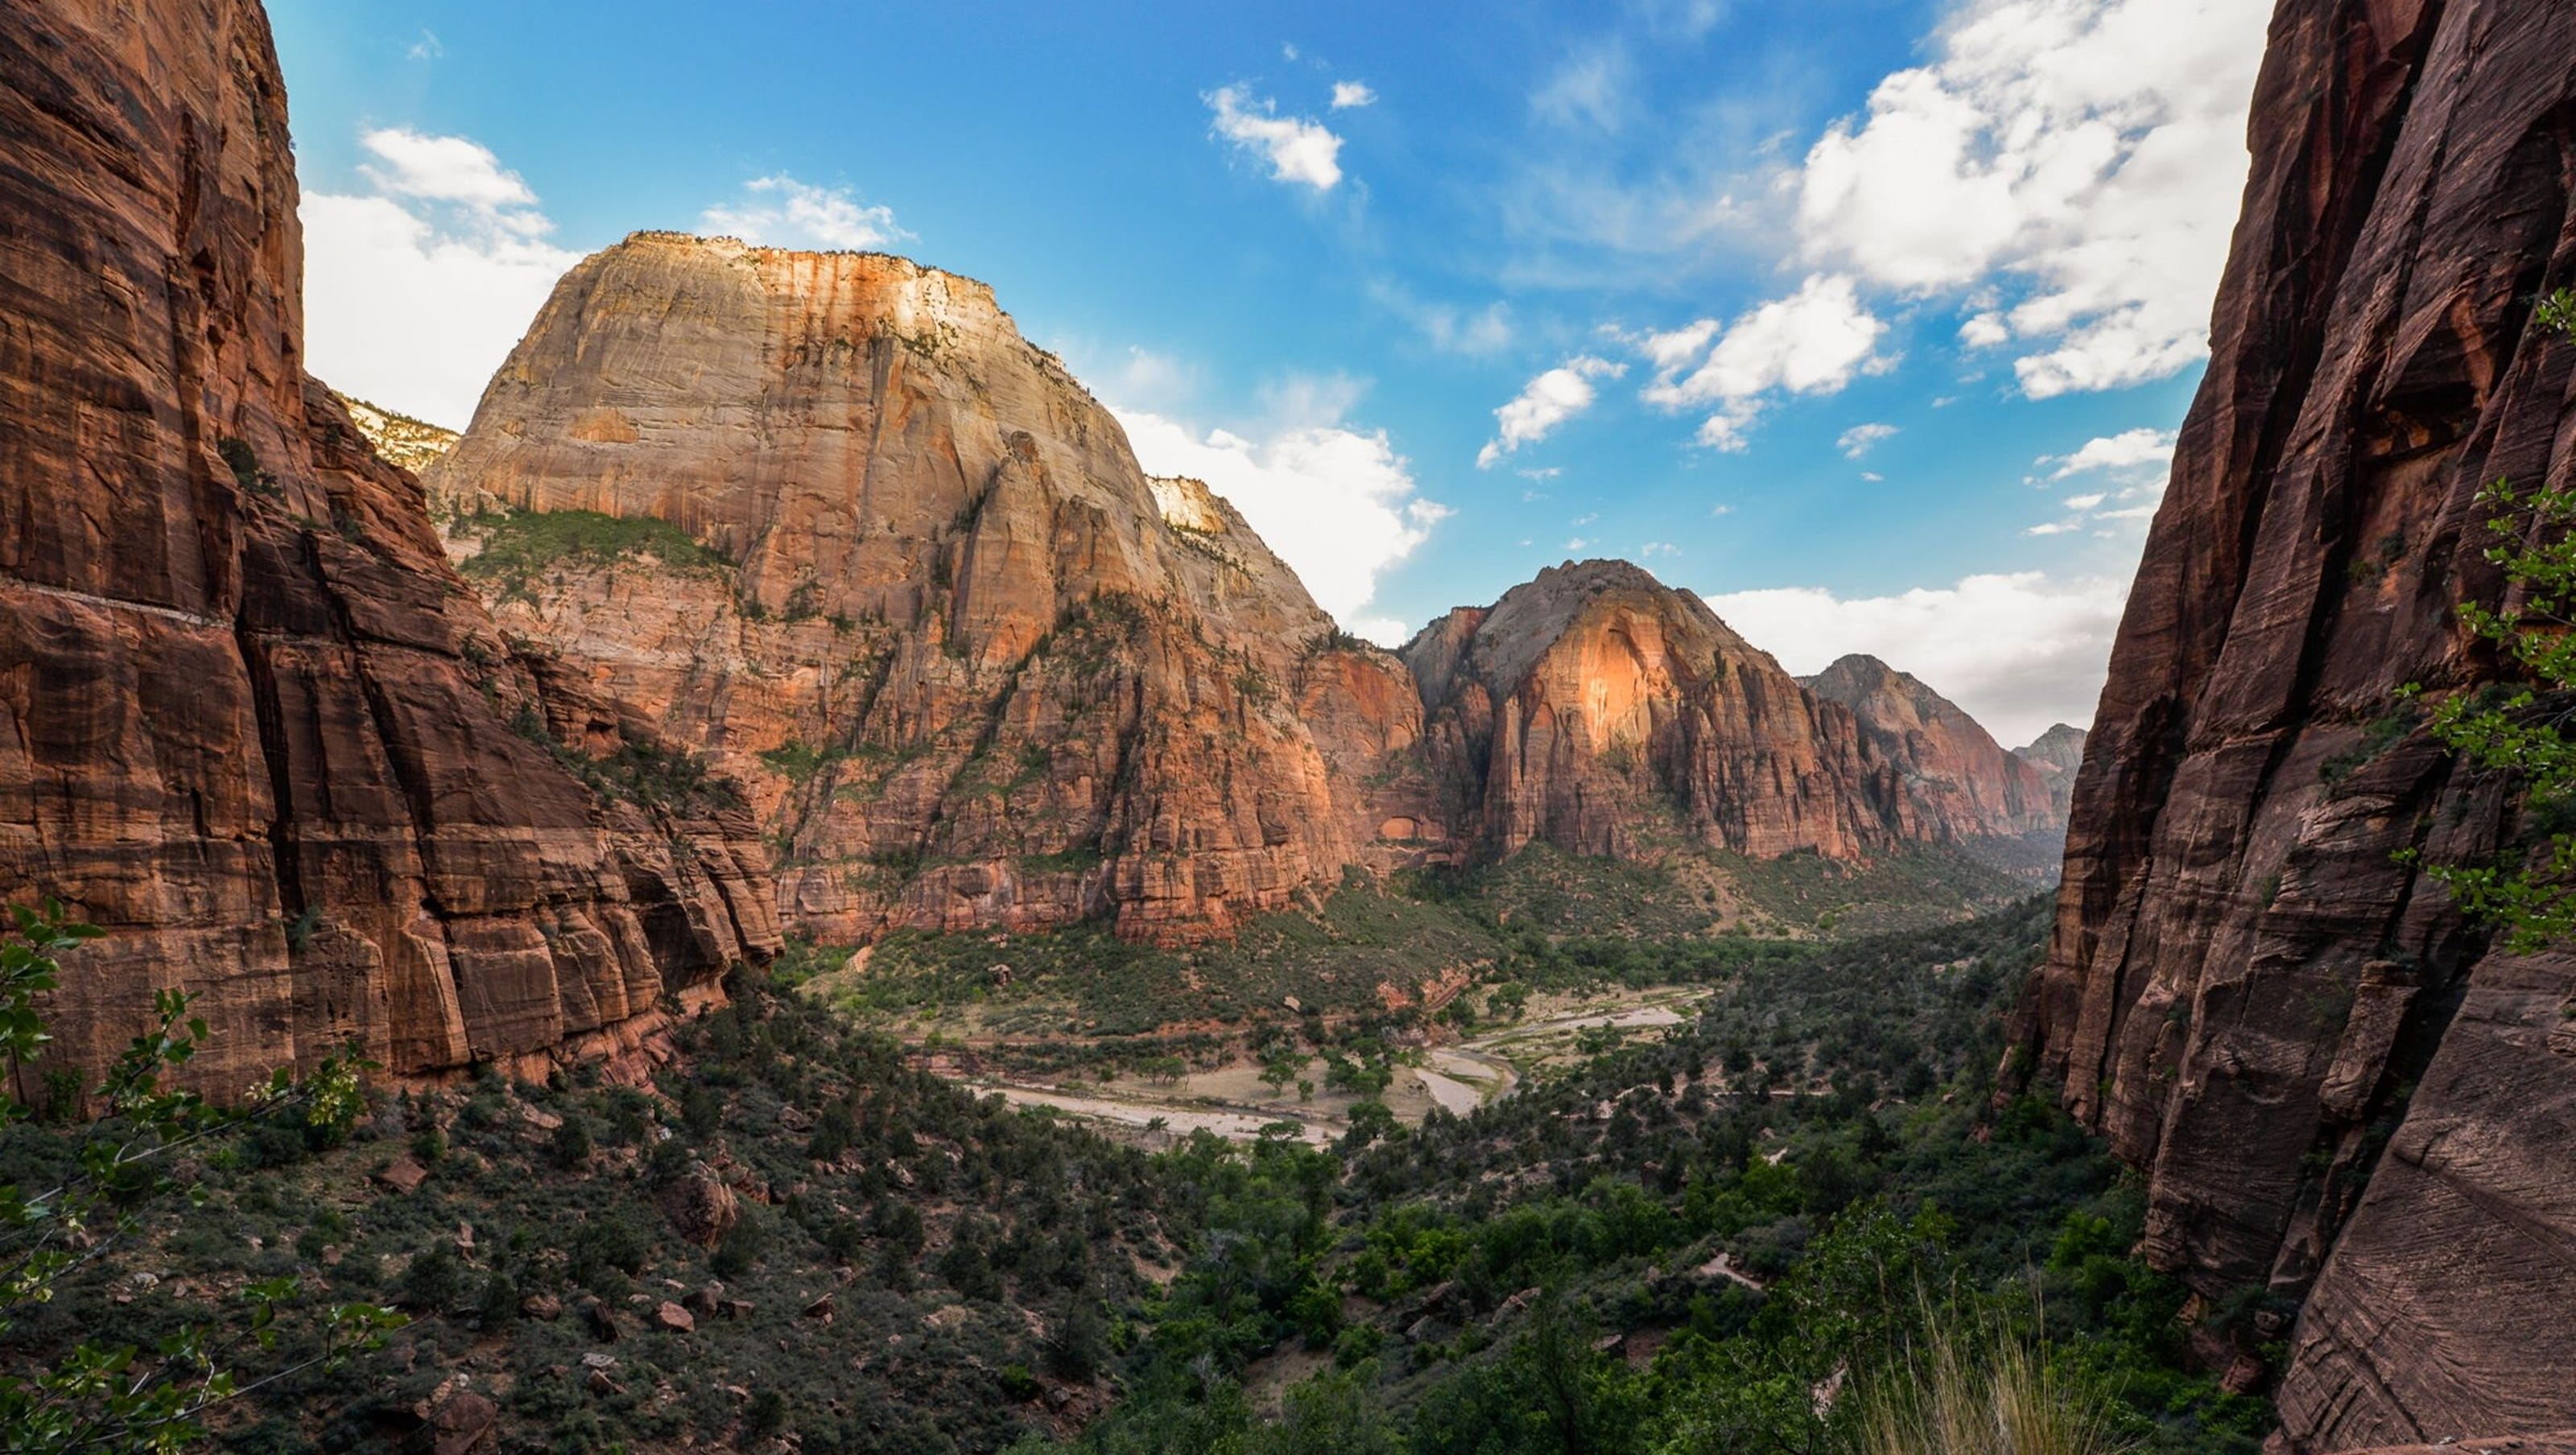 zion national park: 10 tips for your visit to the park